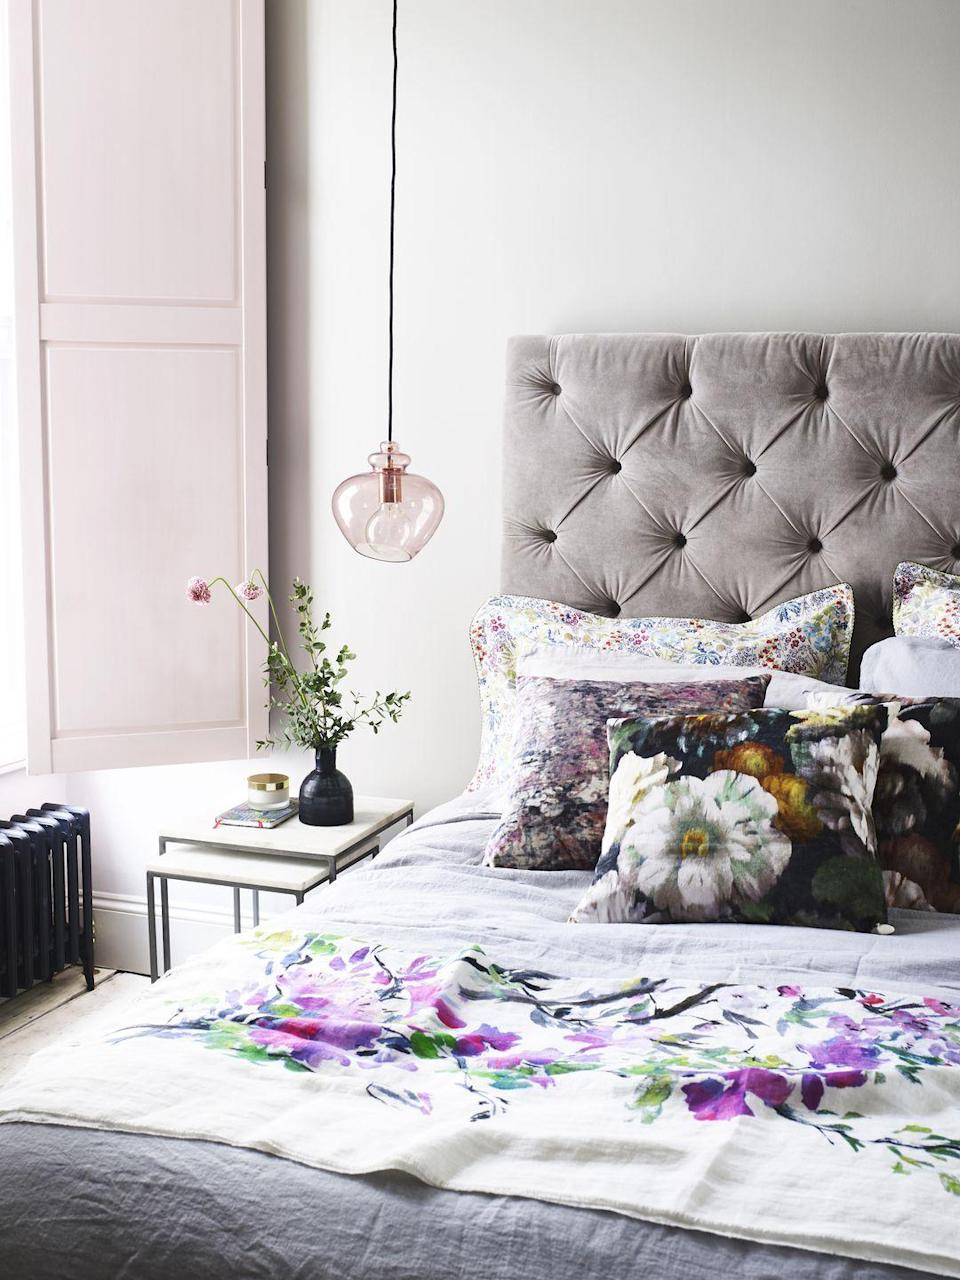 <p>When it comes to decorating your bedroom, or any room in your home for that matter, it pays to think outside the box. Pink solid panel wood shutters and a pink hued glass pendant lamp creates a real charm in this bedroom – sometimes it's the details that count.</p>